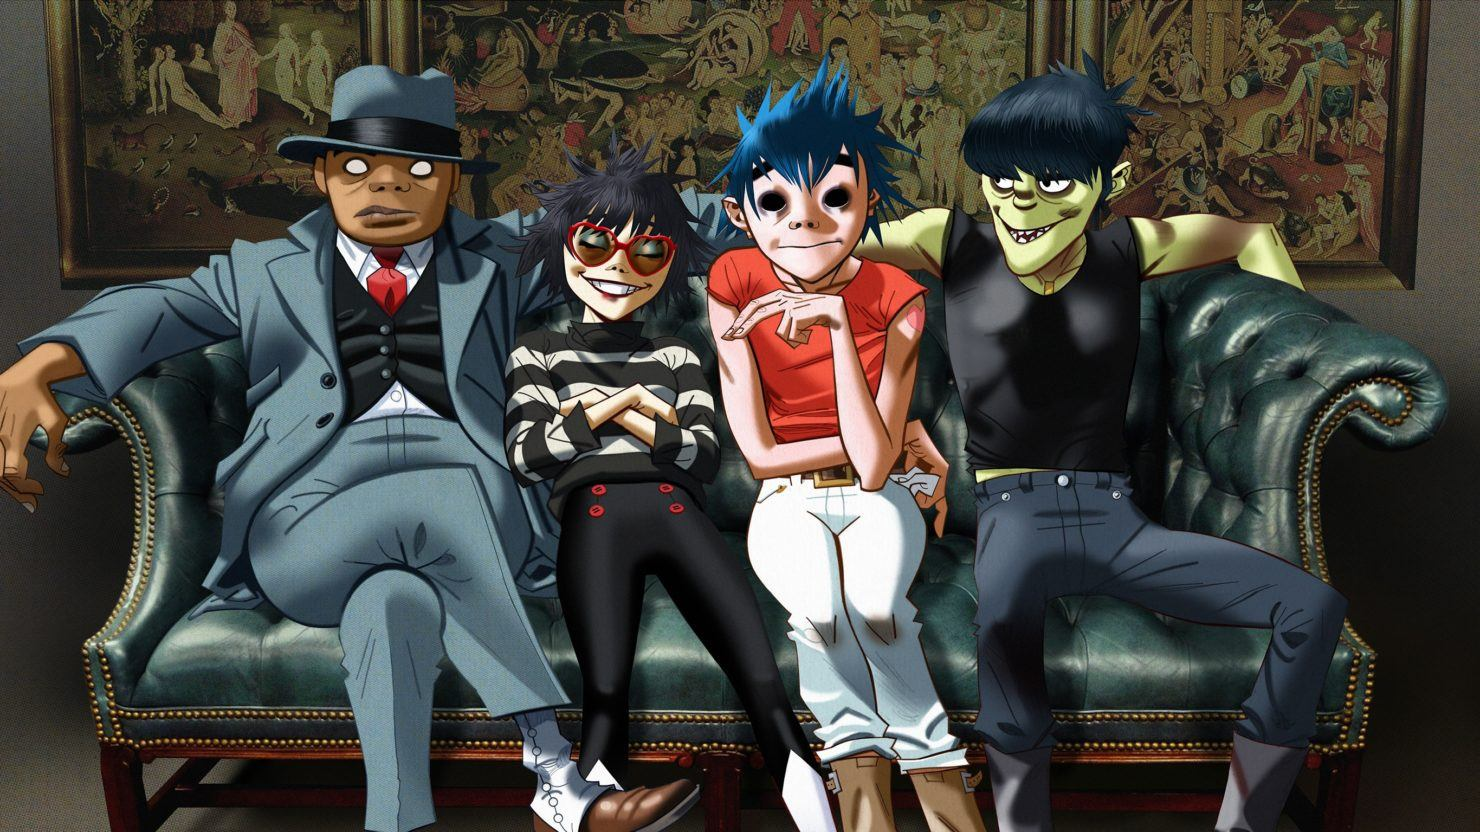 Gorillaz Tour 2020.Gorillaz Tour Dates And Concert Tickets